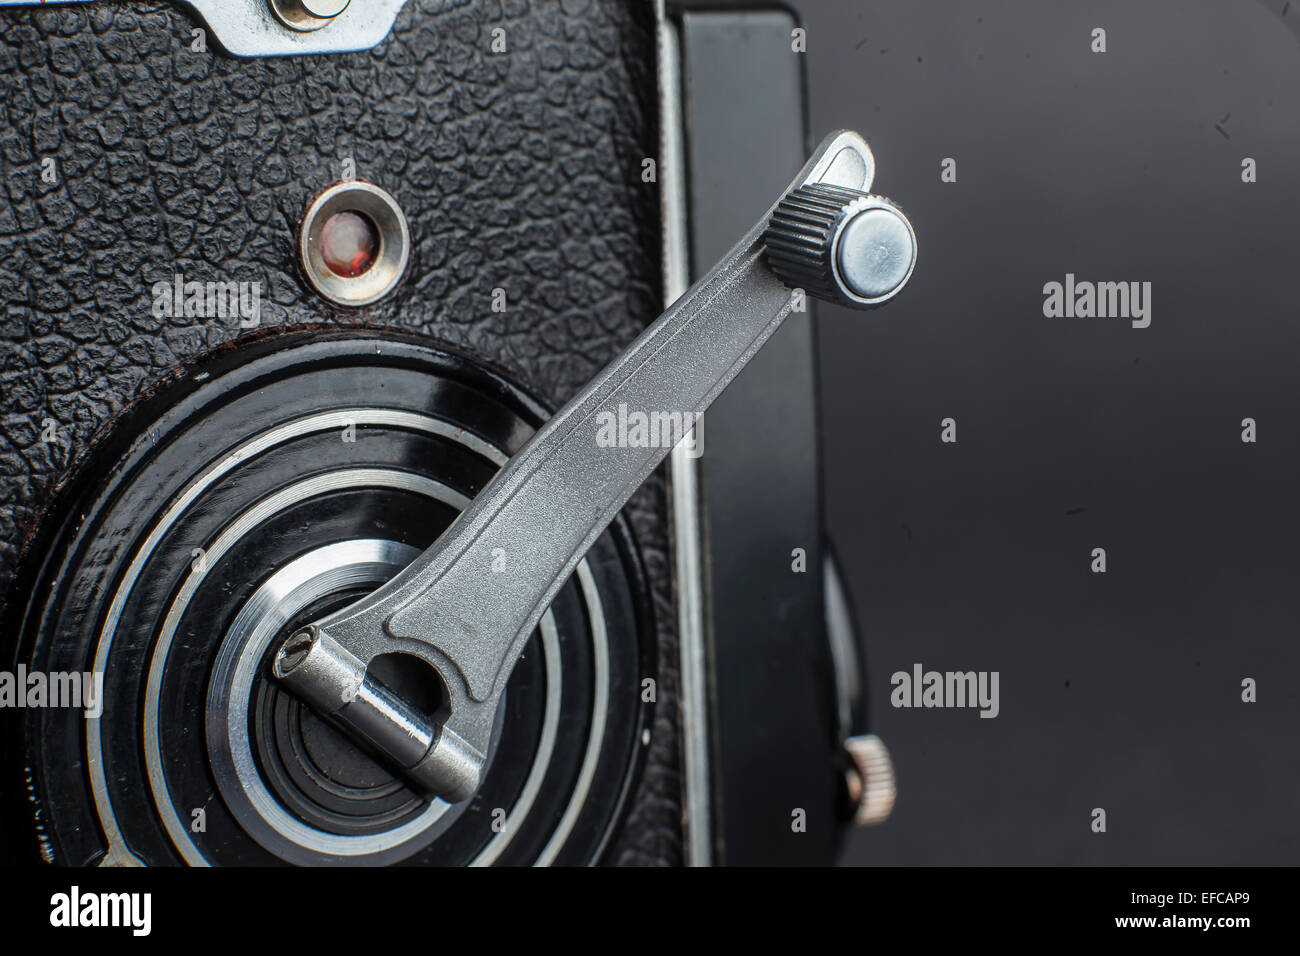 the crank handle of an old medium format twin reflex camera - Stock Image